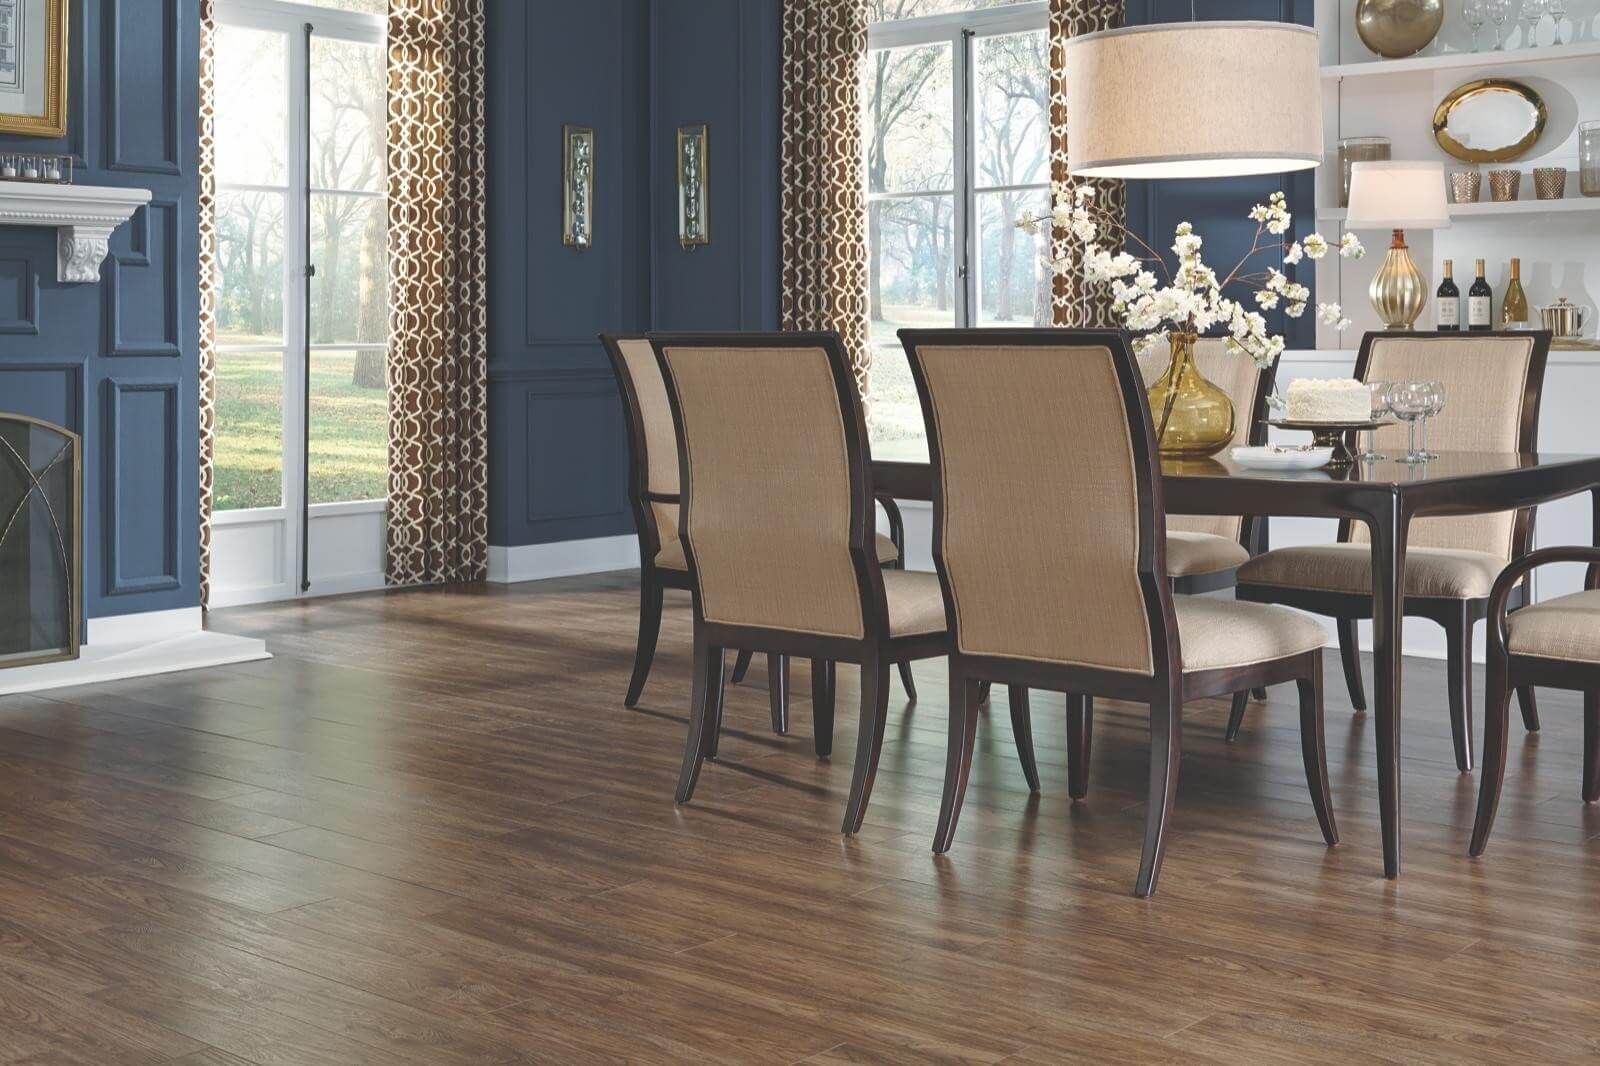 entryway and foyer flooring options include hardwood, laminate, tile, stone, linoleum, and luxury vinyl tile and plank